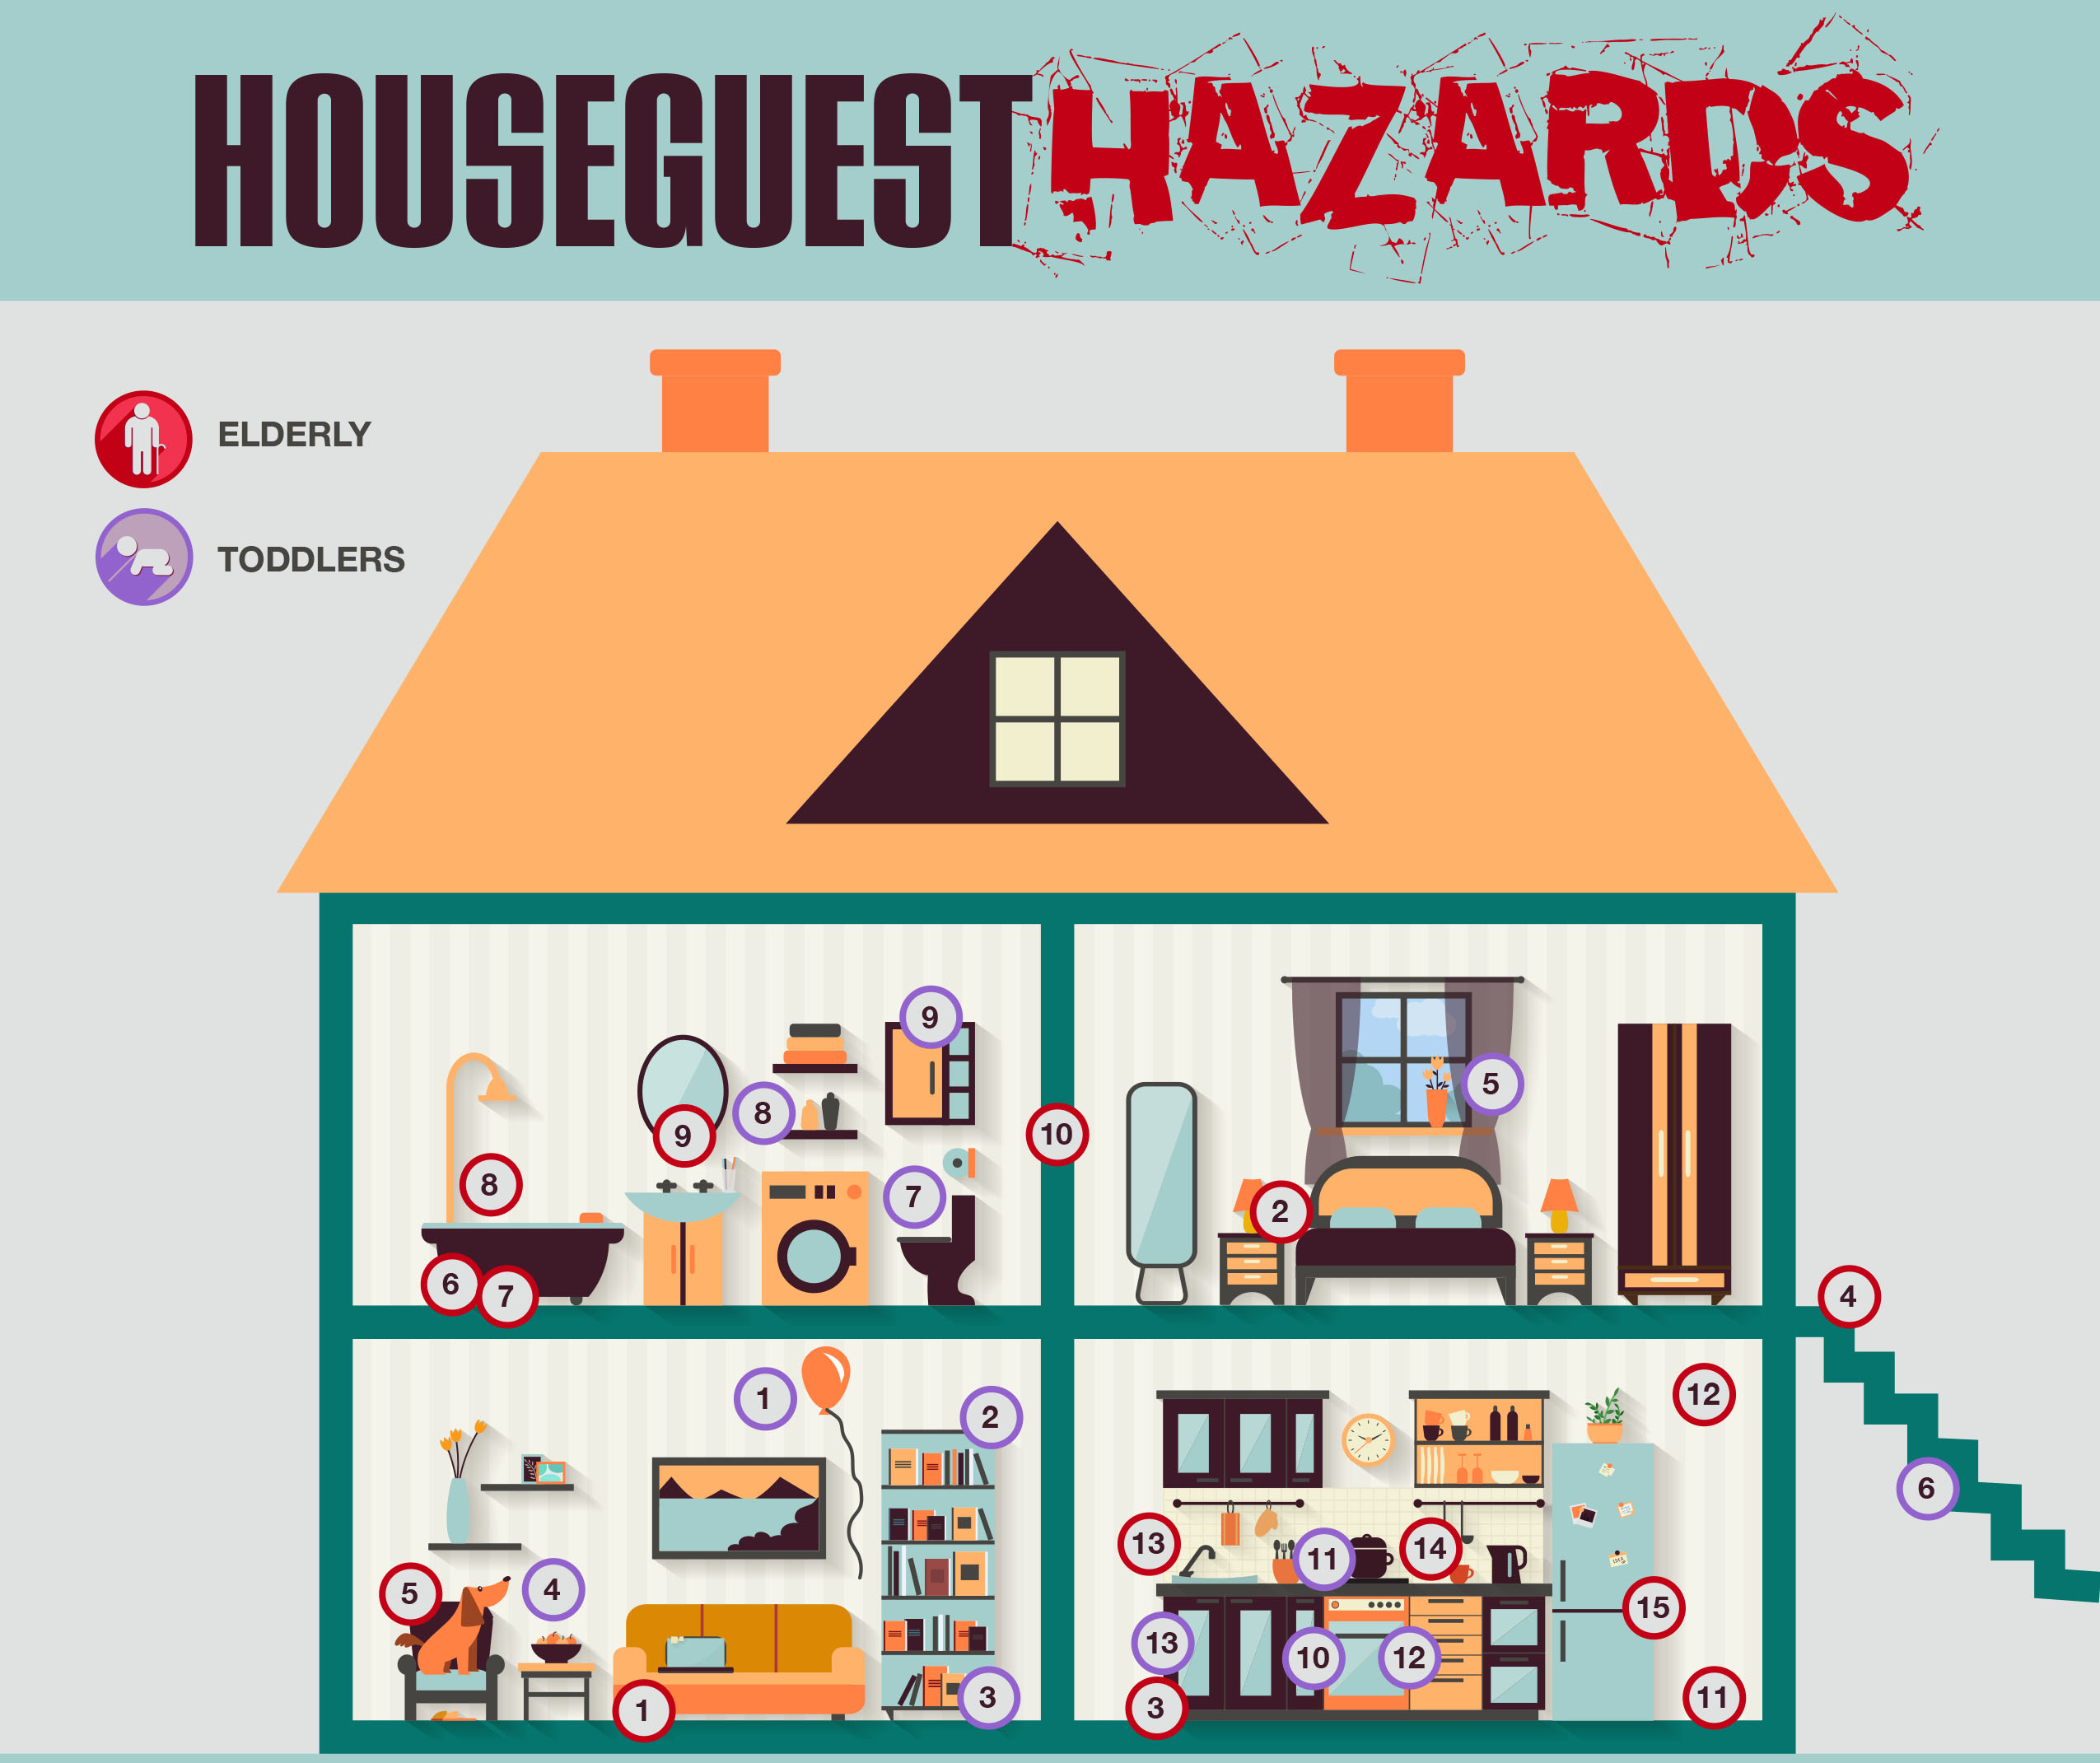 home hazards for house guests southern oak insurance